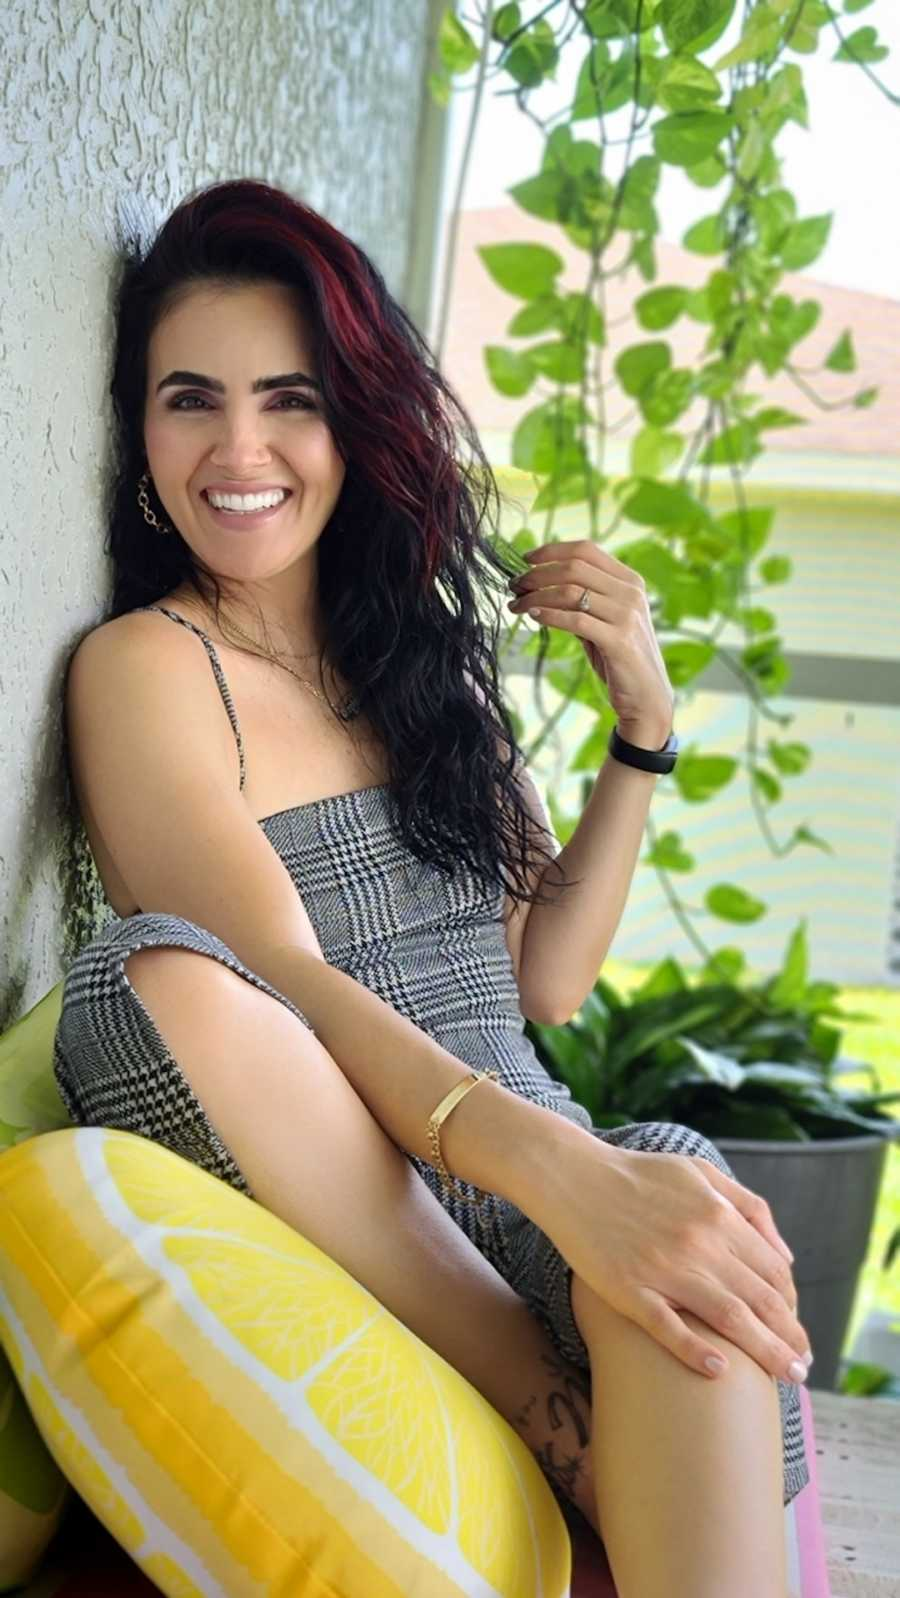 woman in plaid dress smiling